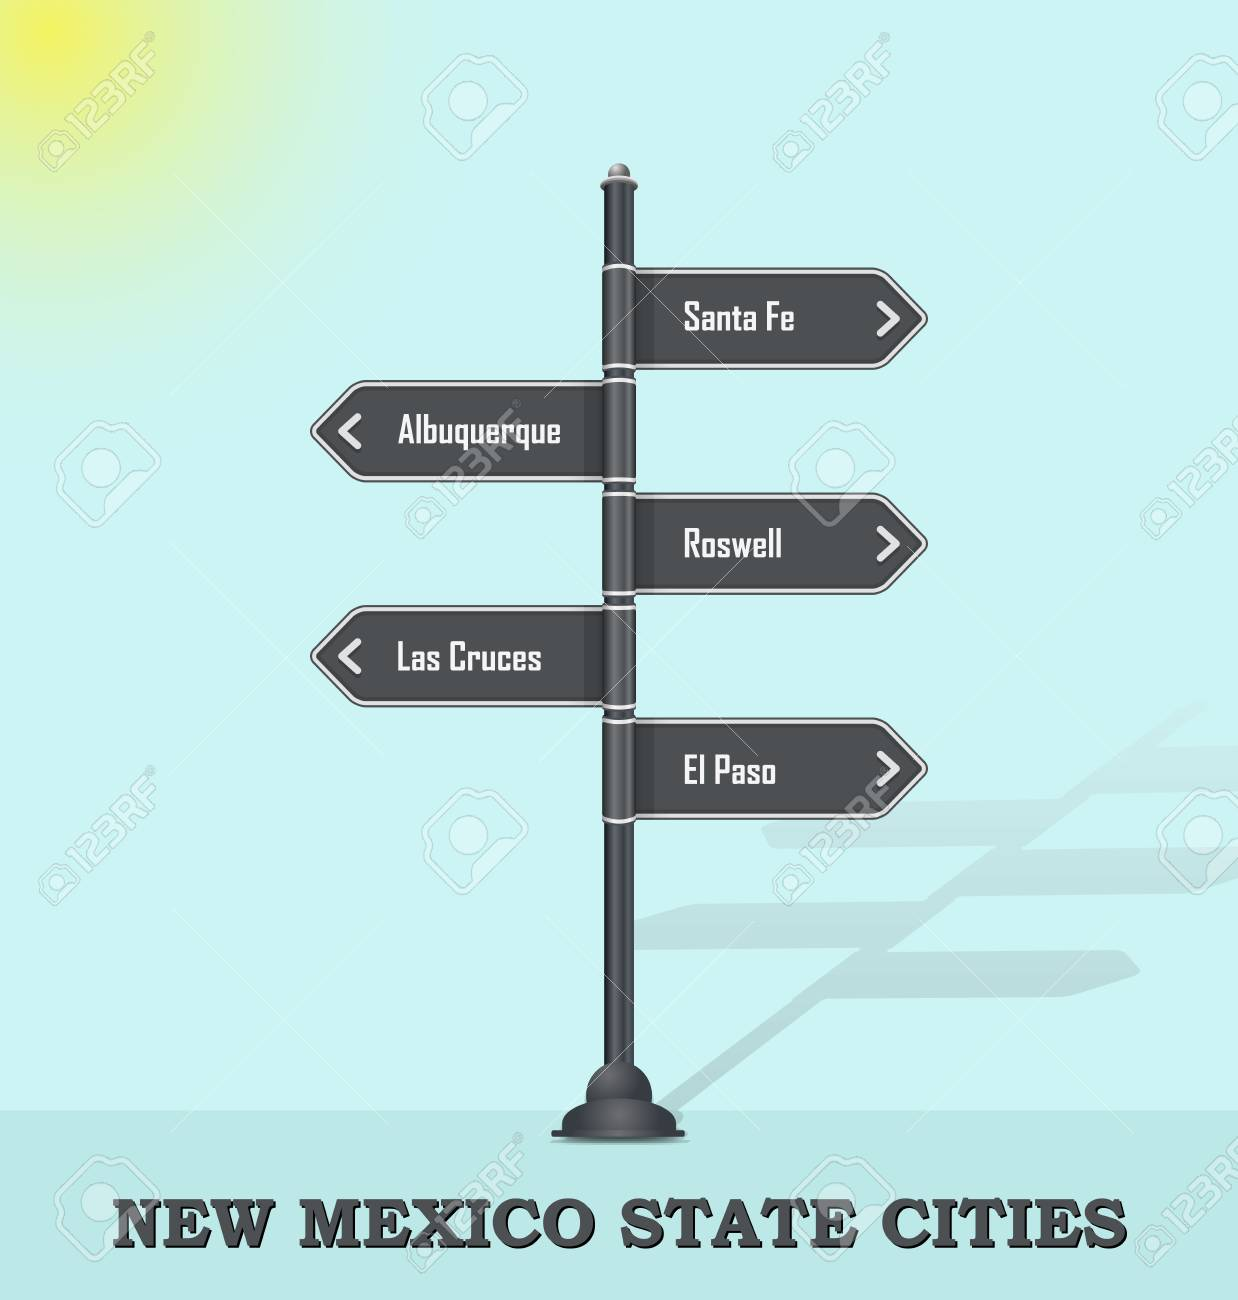 Road signpost template for US towns and cities - New Mexico state